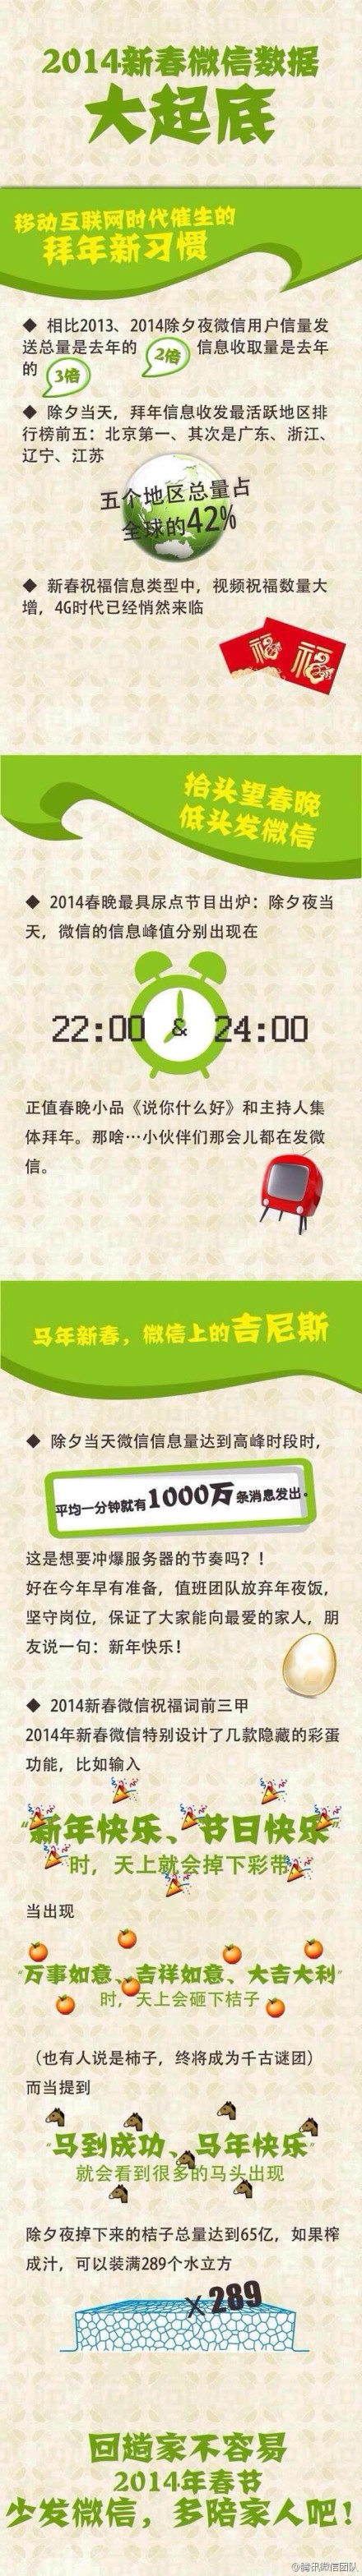 WeChat China New Year infographic